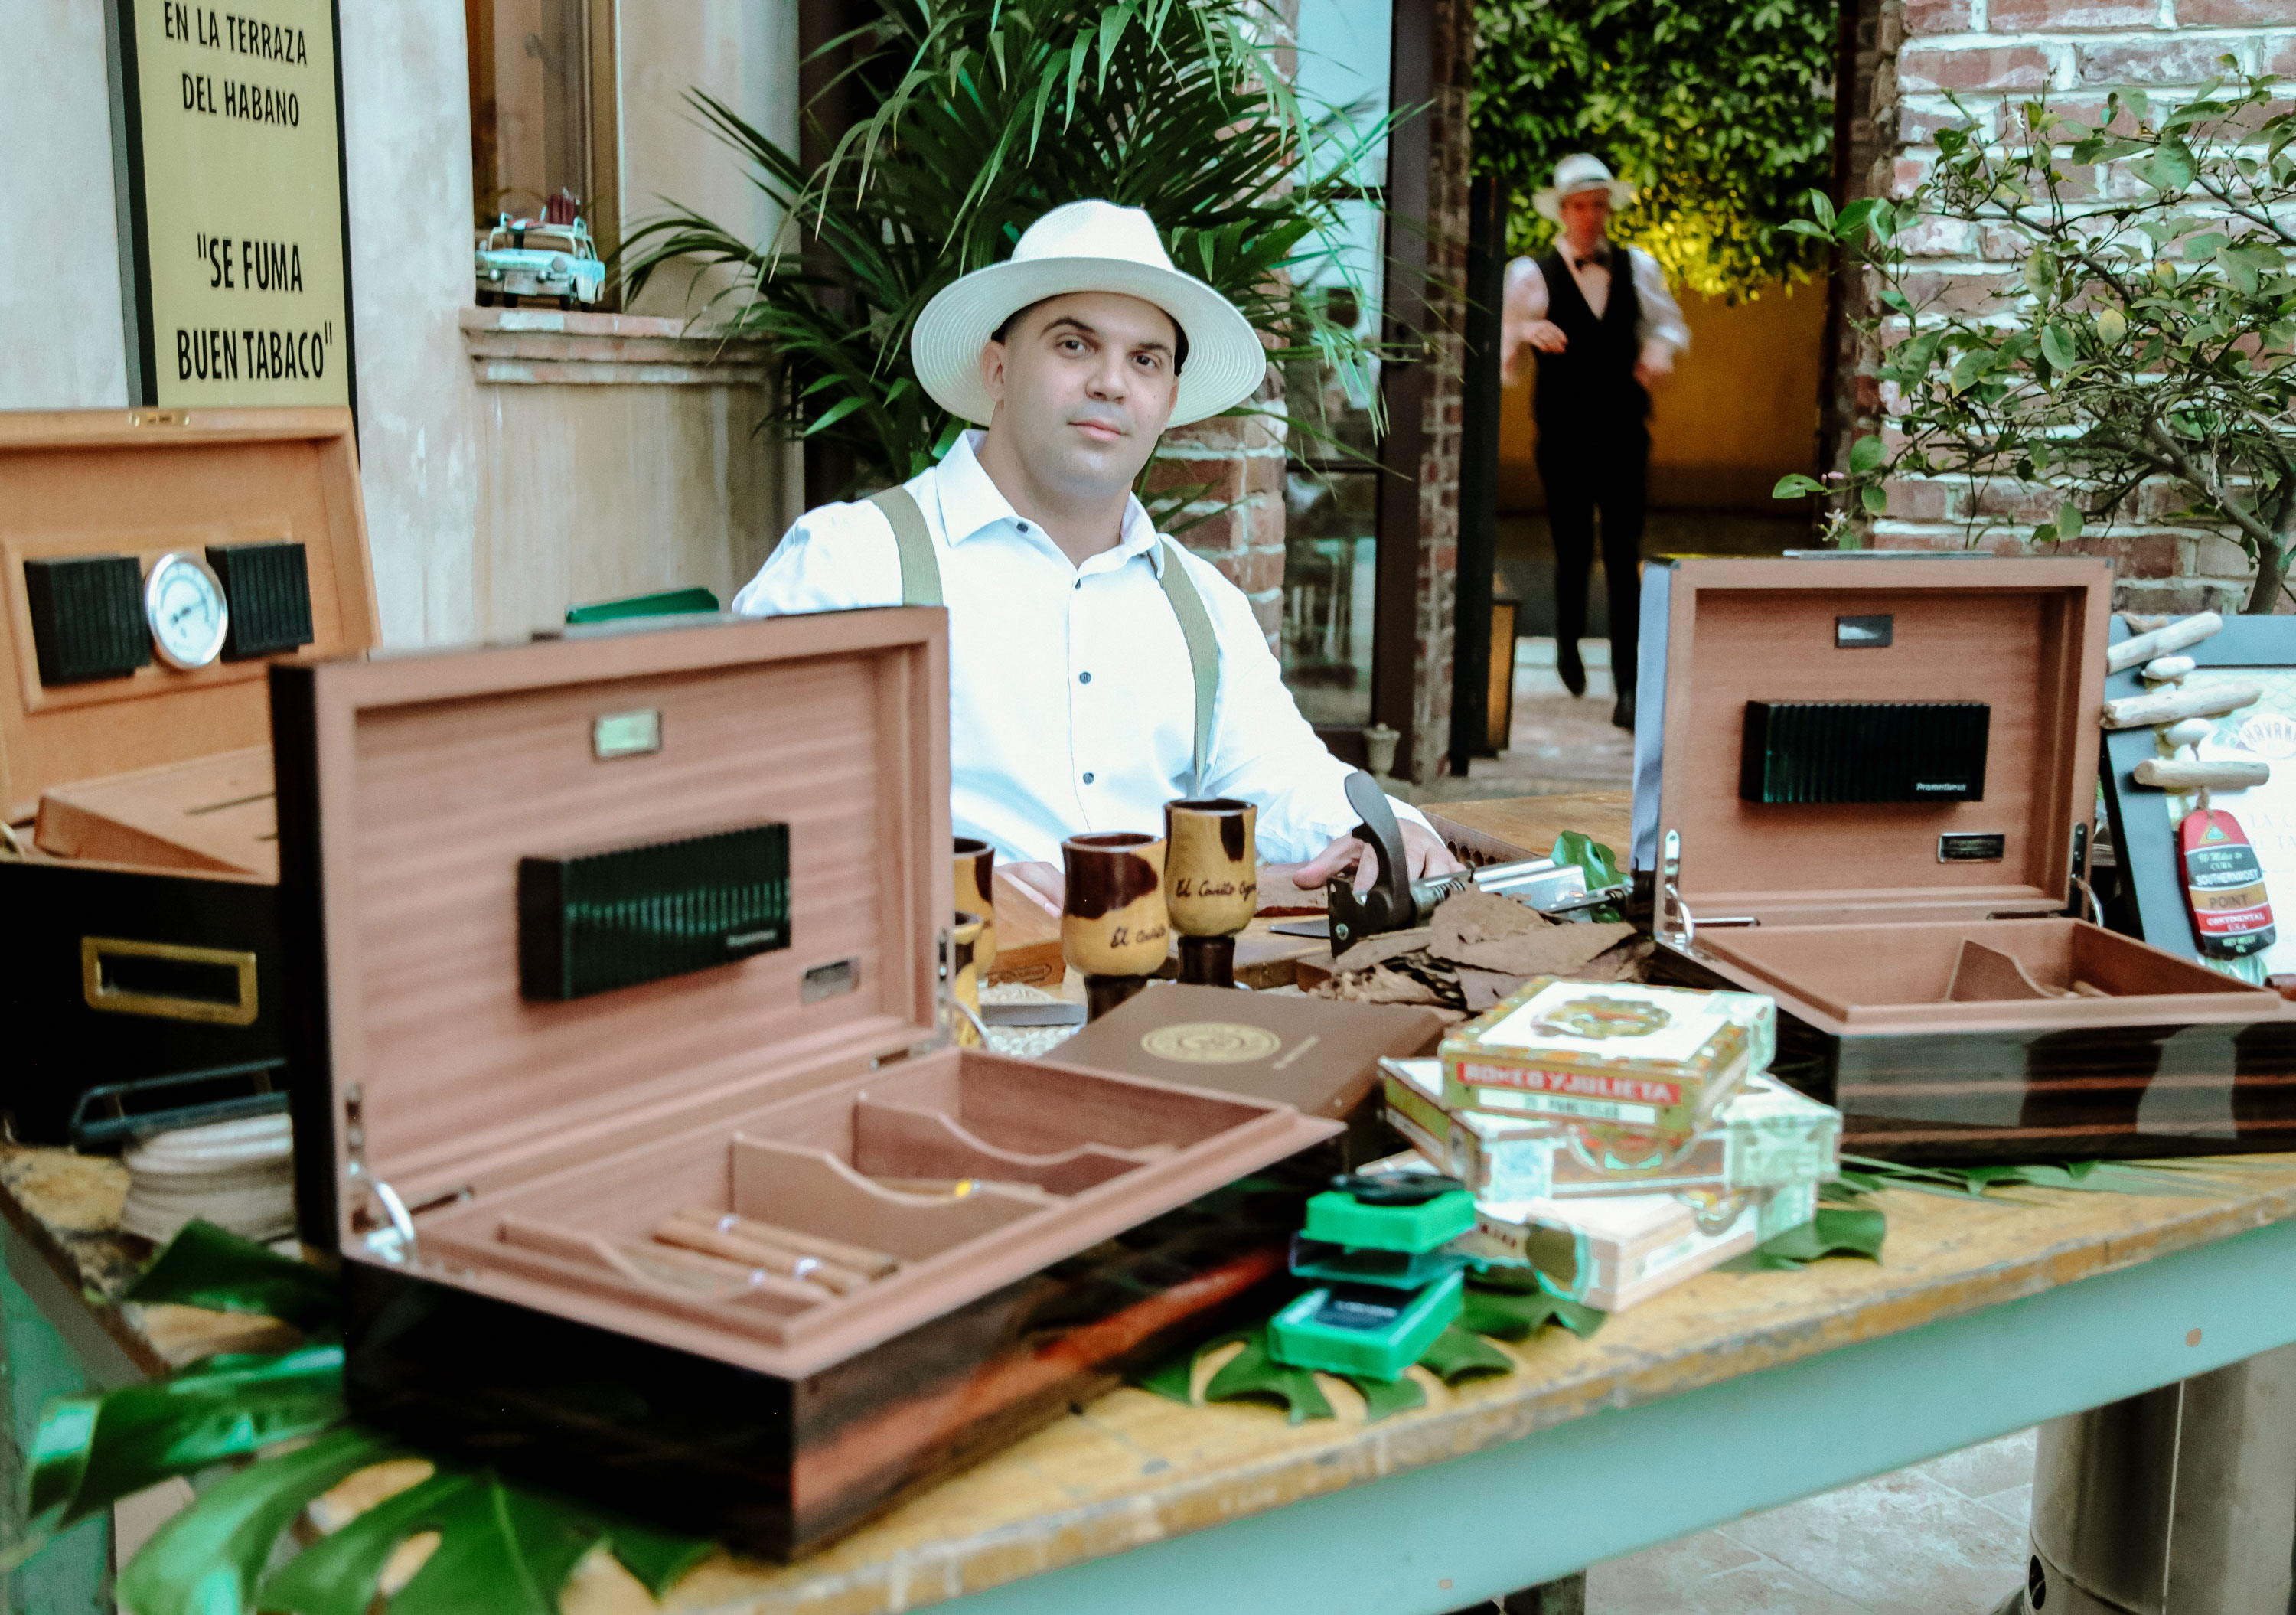 A man rolling cigars at Havana Hills Themed Party